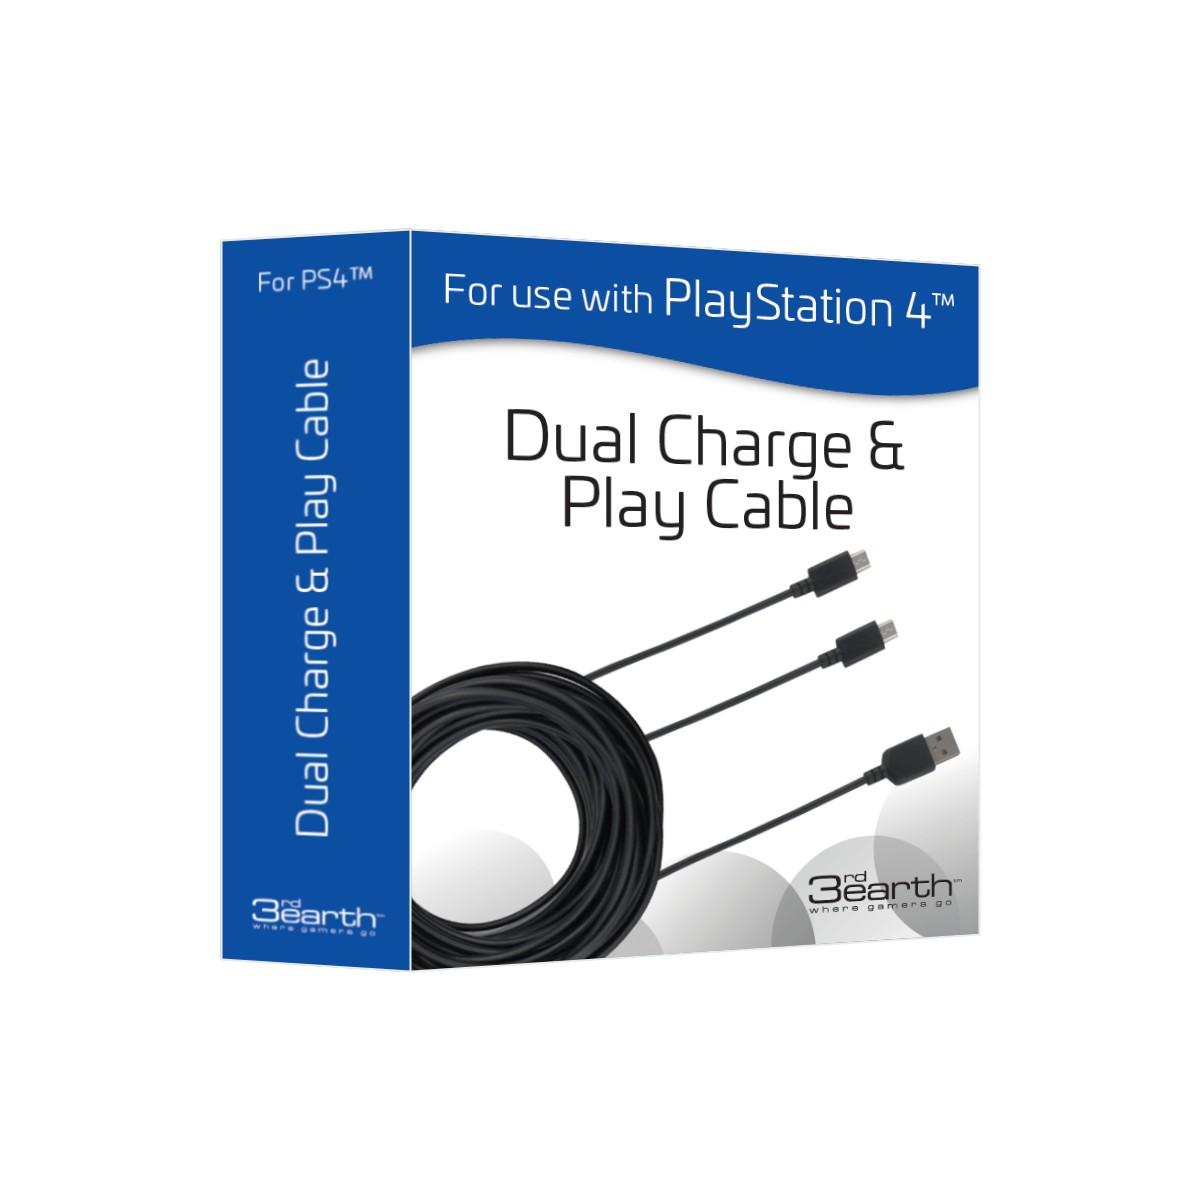 Dual Charge & Play Cable 5m – Black